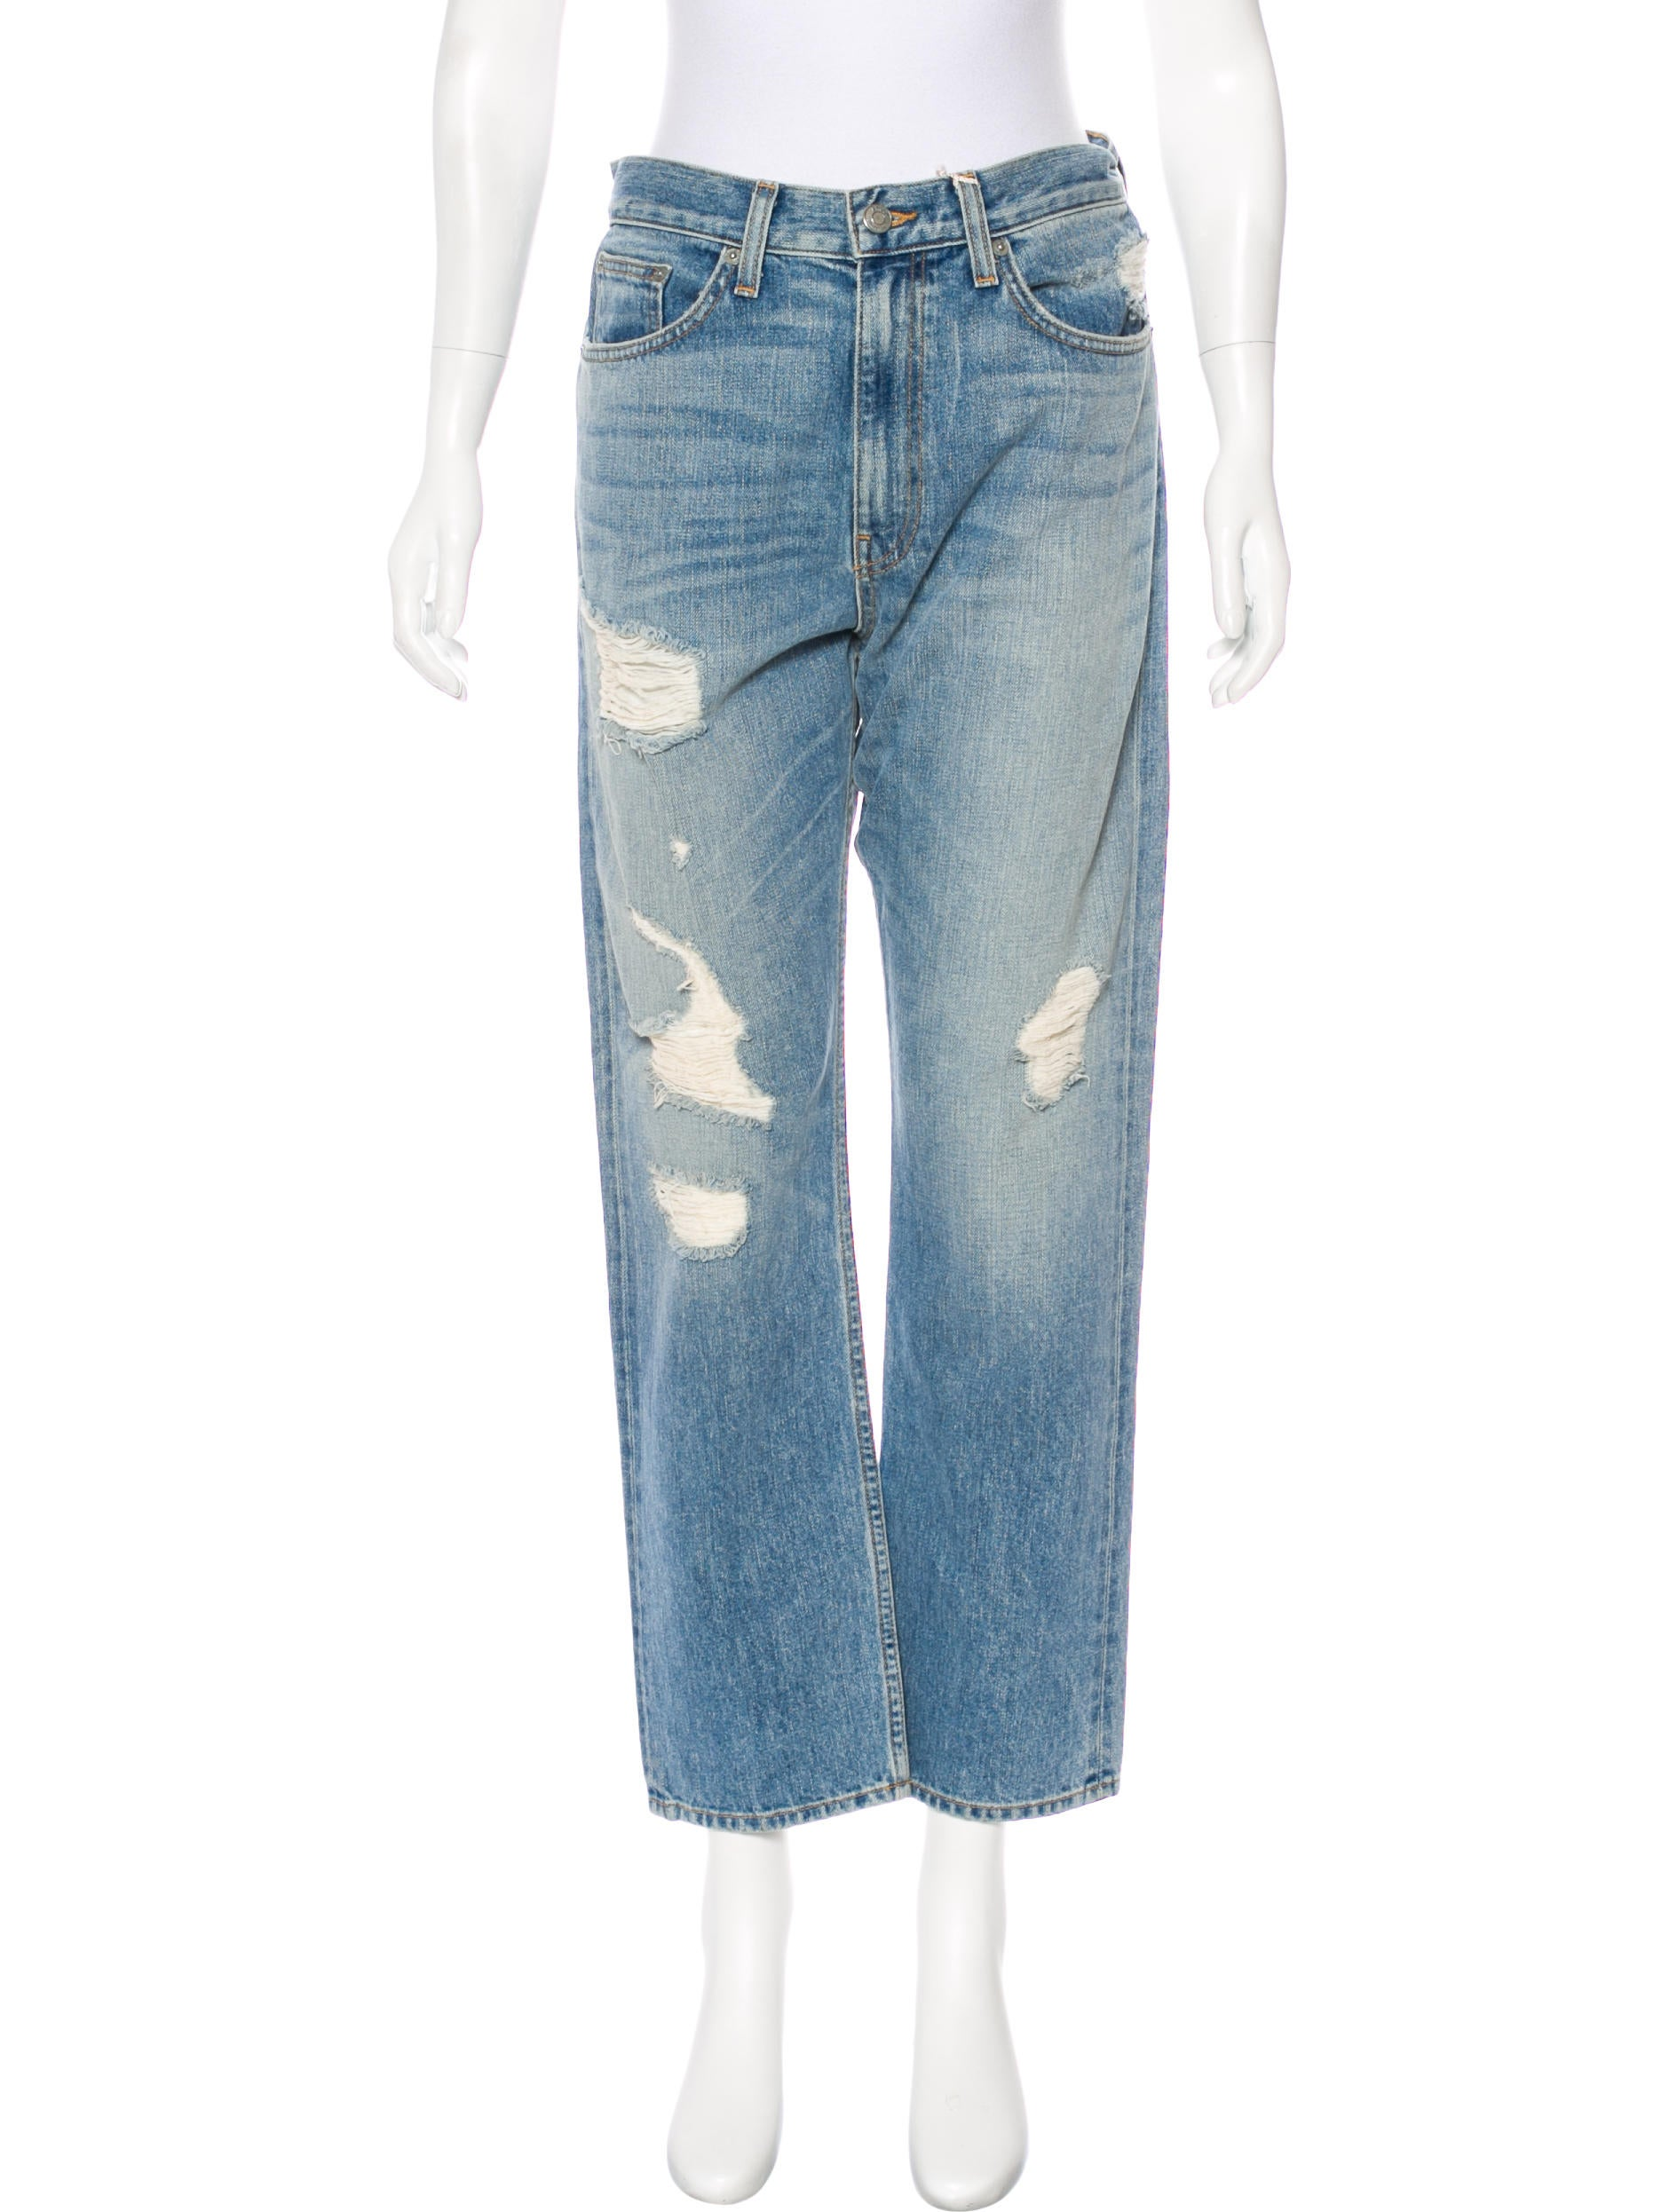 high-waisted jeans - Blue Brock Collection Tz5Q0t